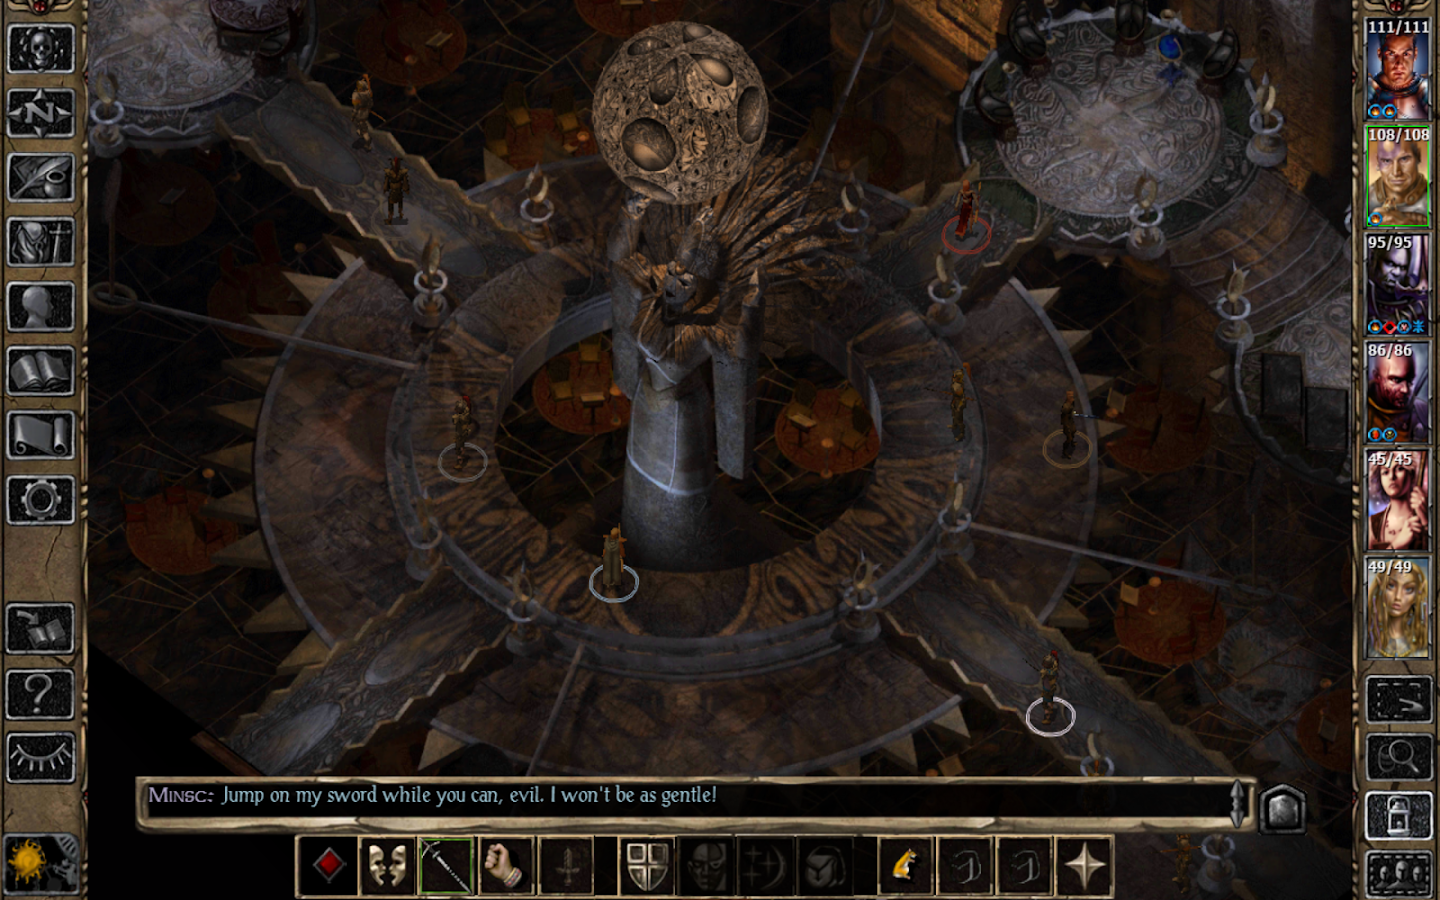 Baldur's Gate II Screenshot 10